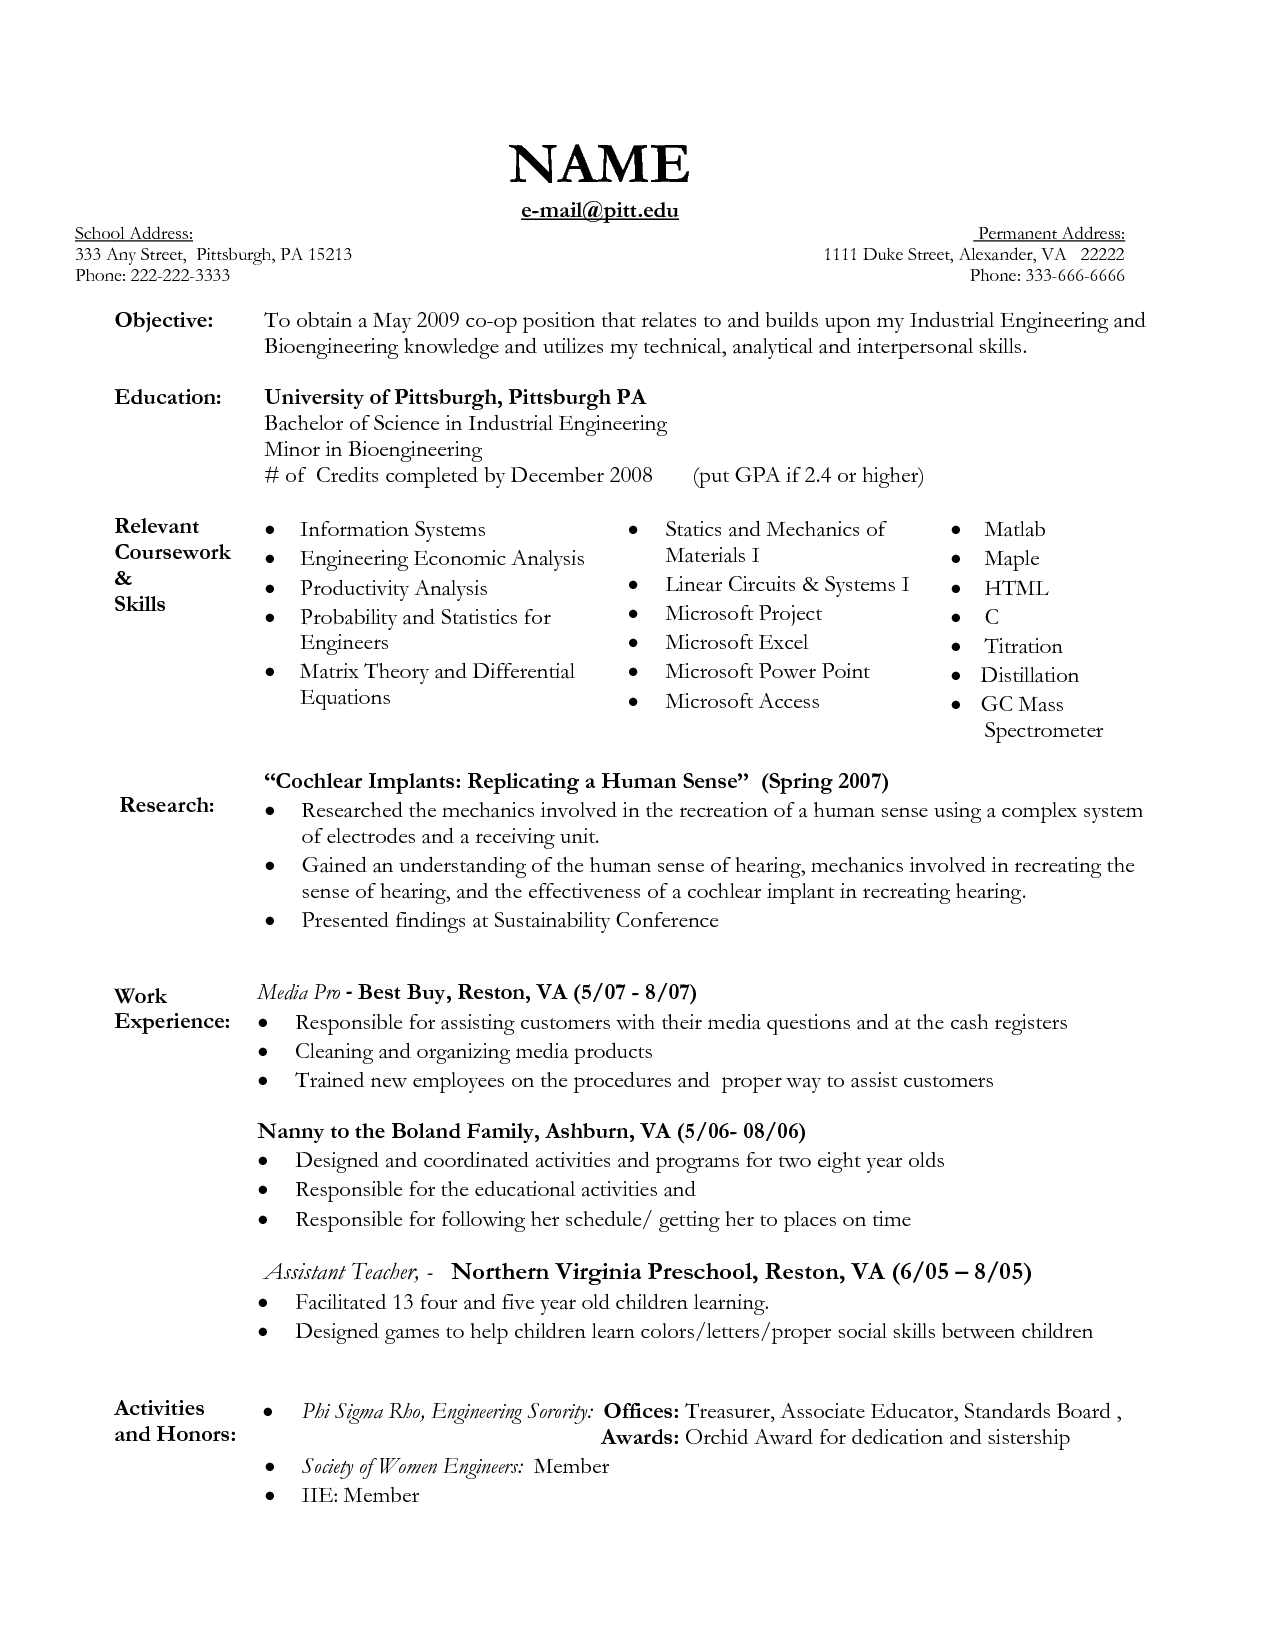 Objective for Nanny Resume and Nanny Care Description for Resume sample